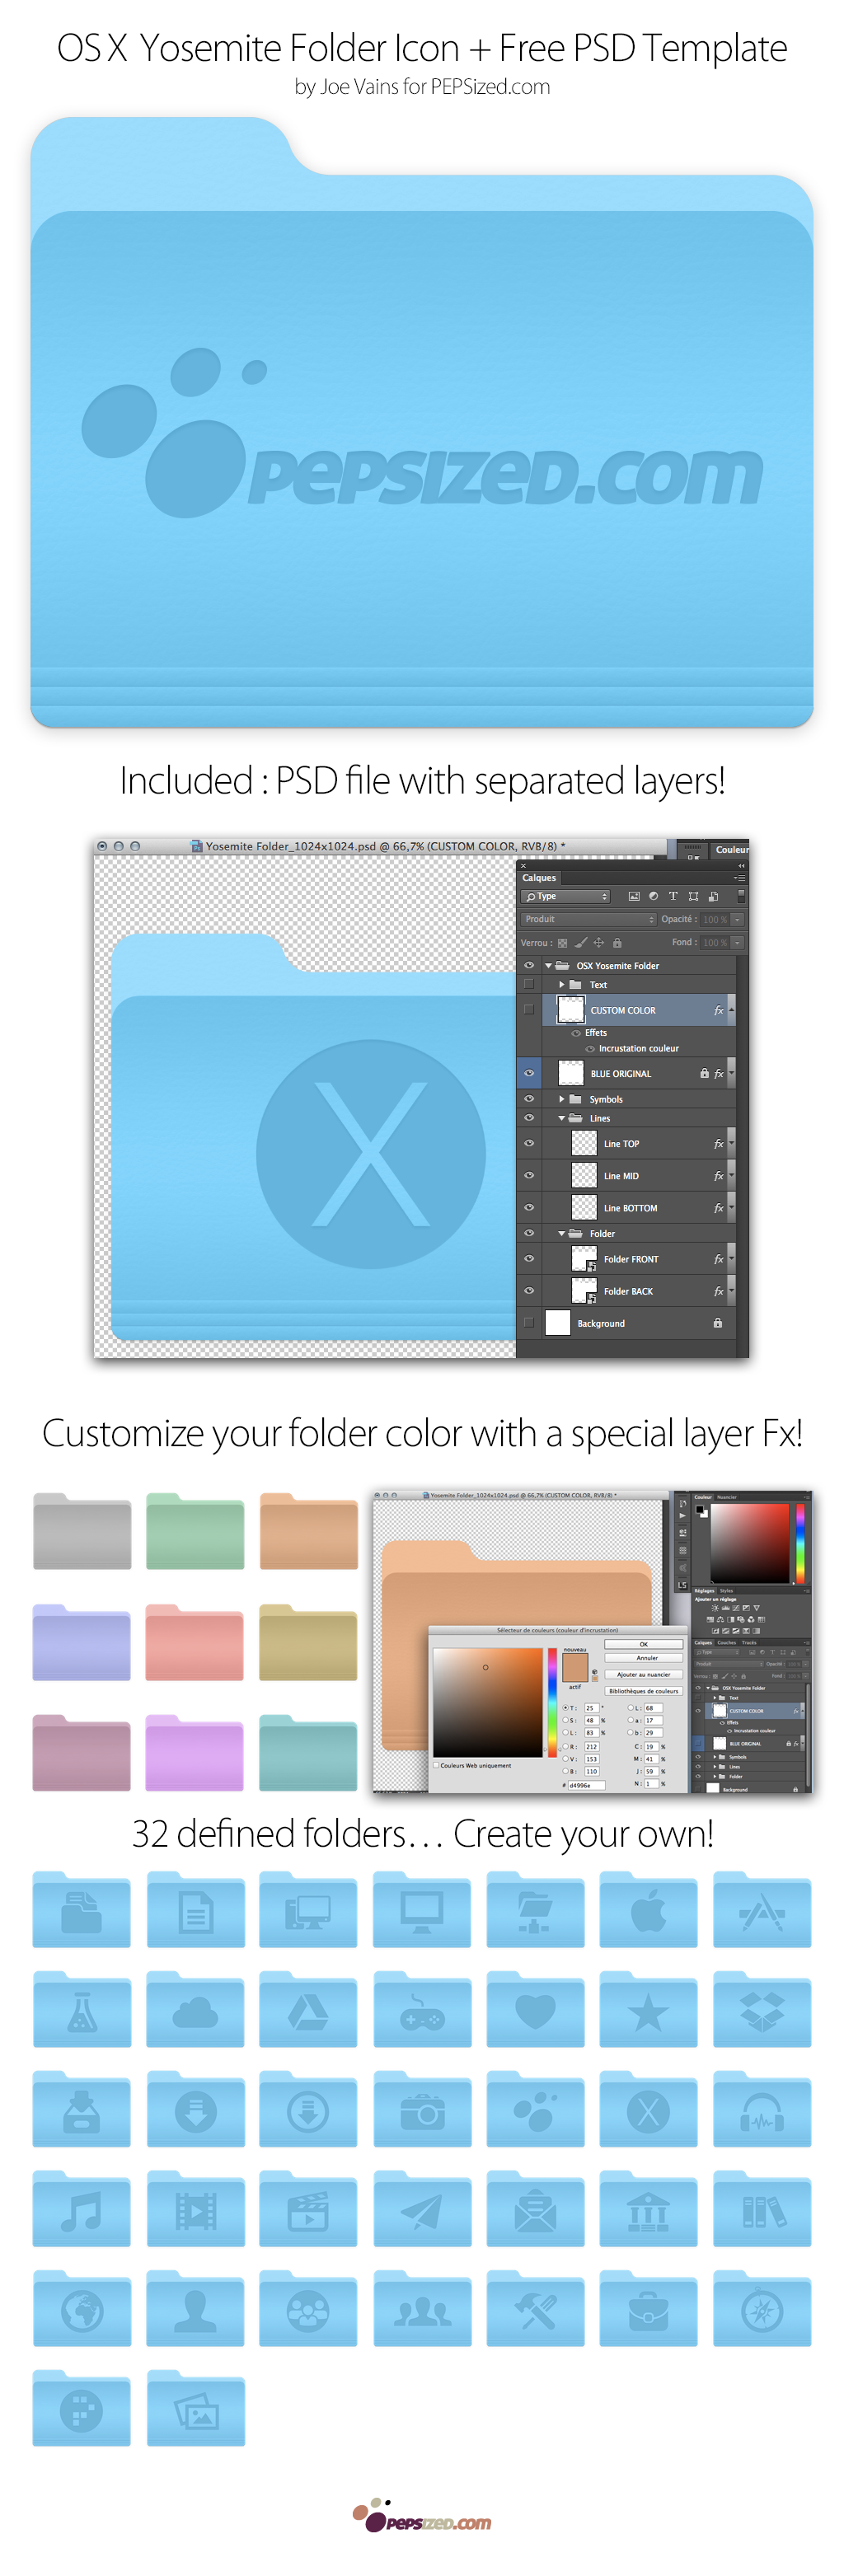 46 OSX Yosemite Folders Icons + Free PSD Template – PEPSized